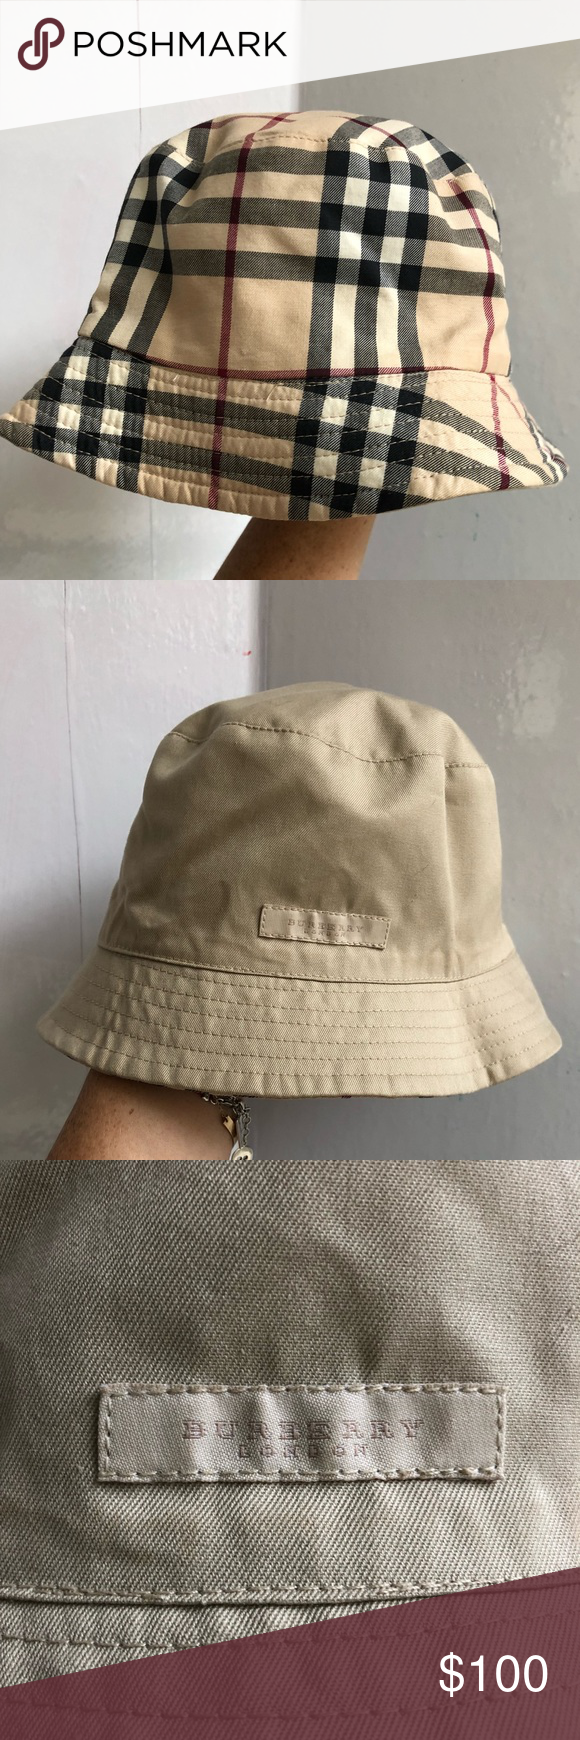 68e8f8932b0 Burberry Summer Bucket Hat This reversible packable classic Burberry bucket  hat is perfect to take on